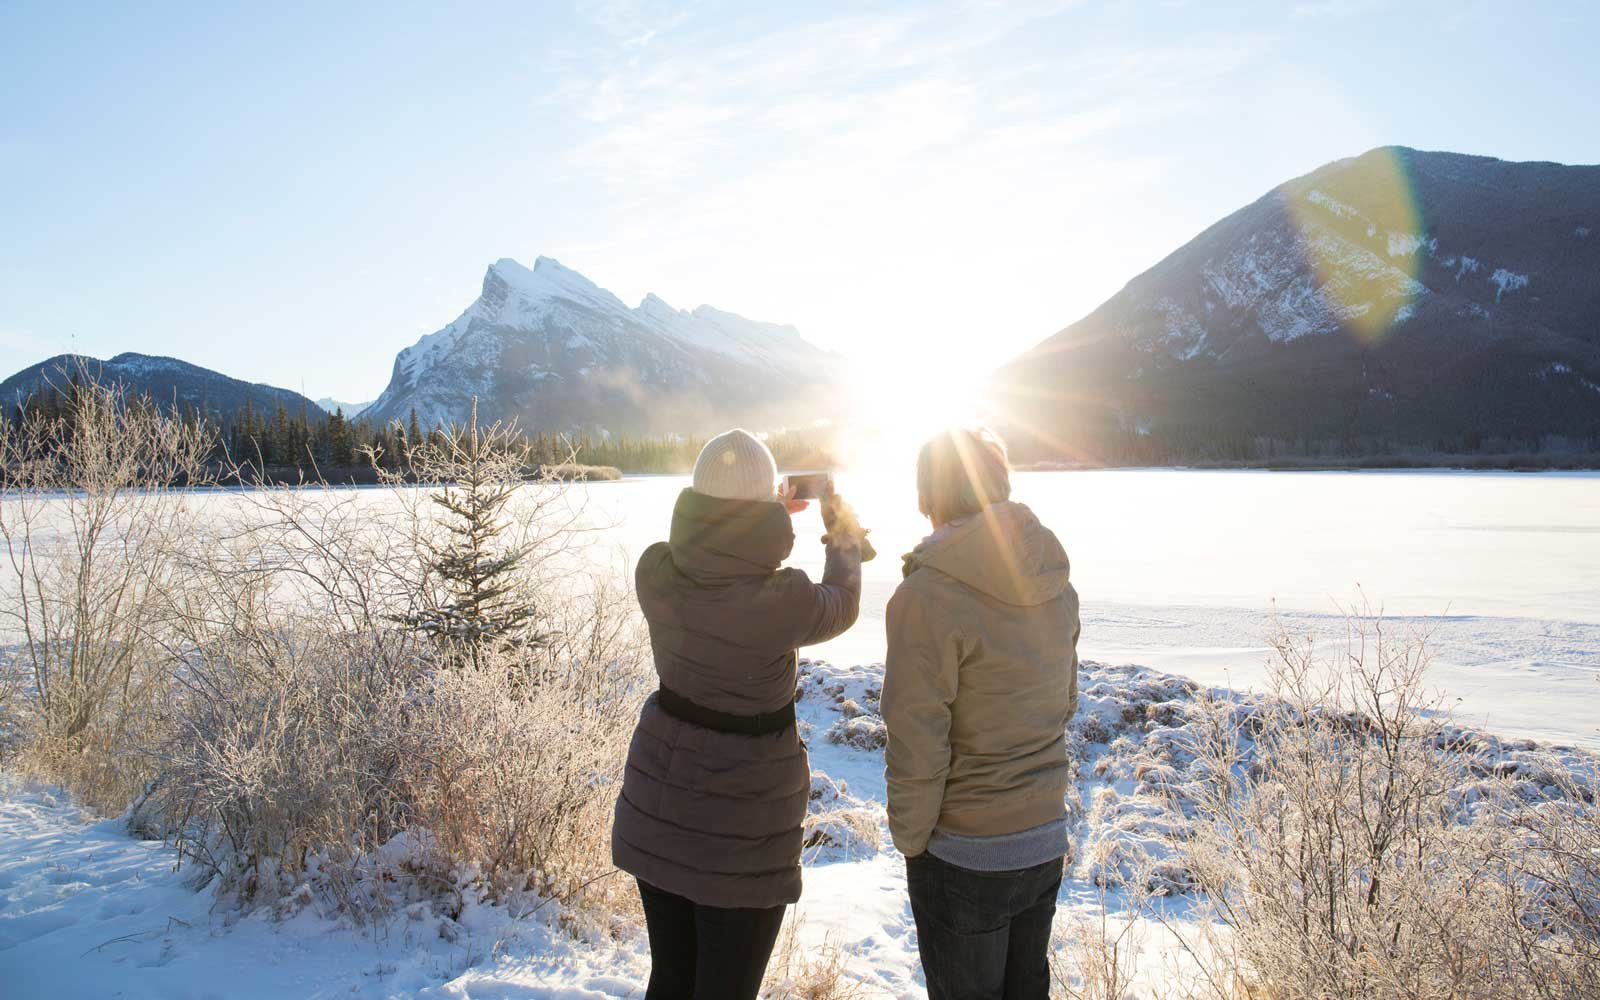 51 Winter Caption Ideas For Cool Instagram Photos